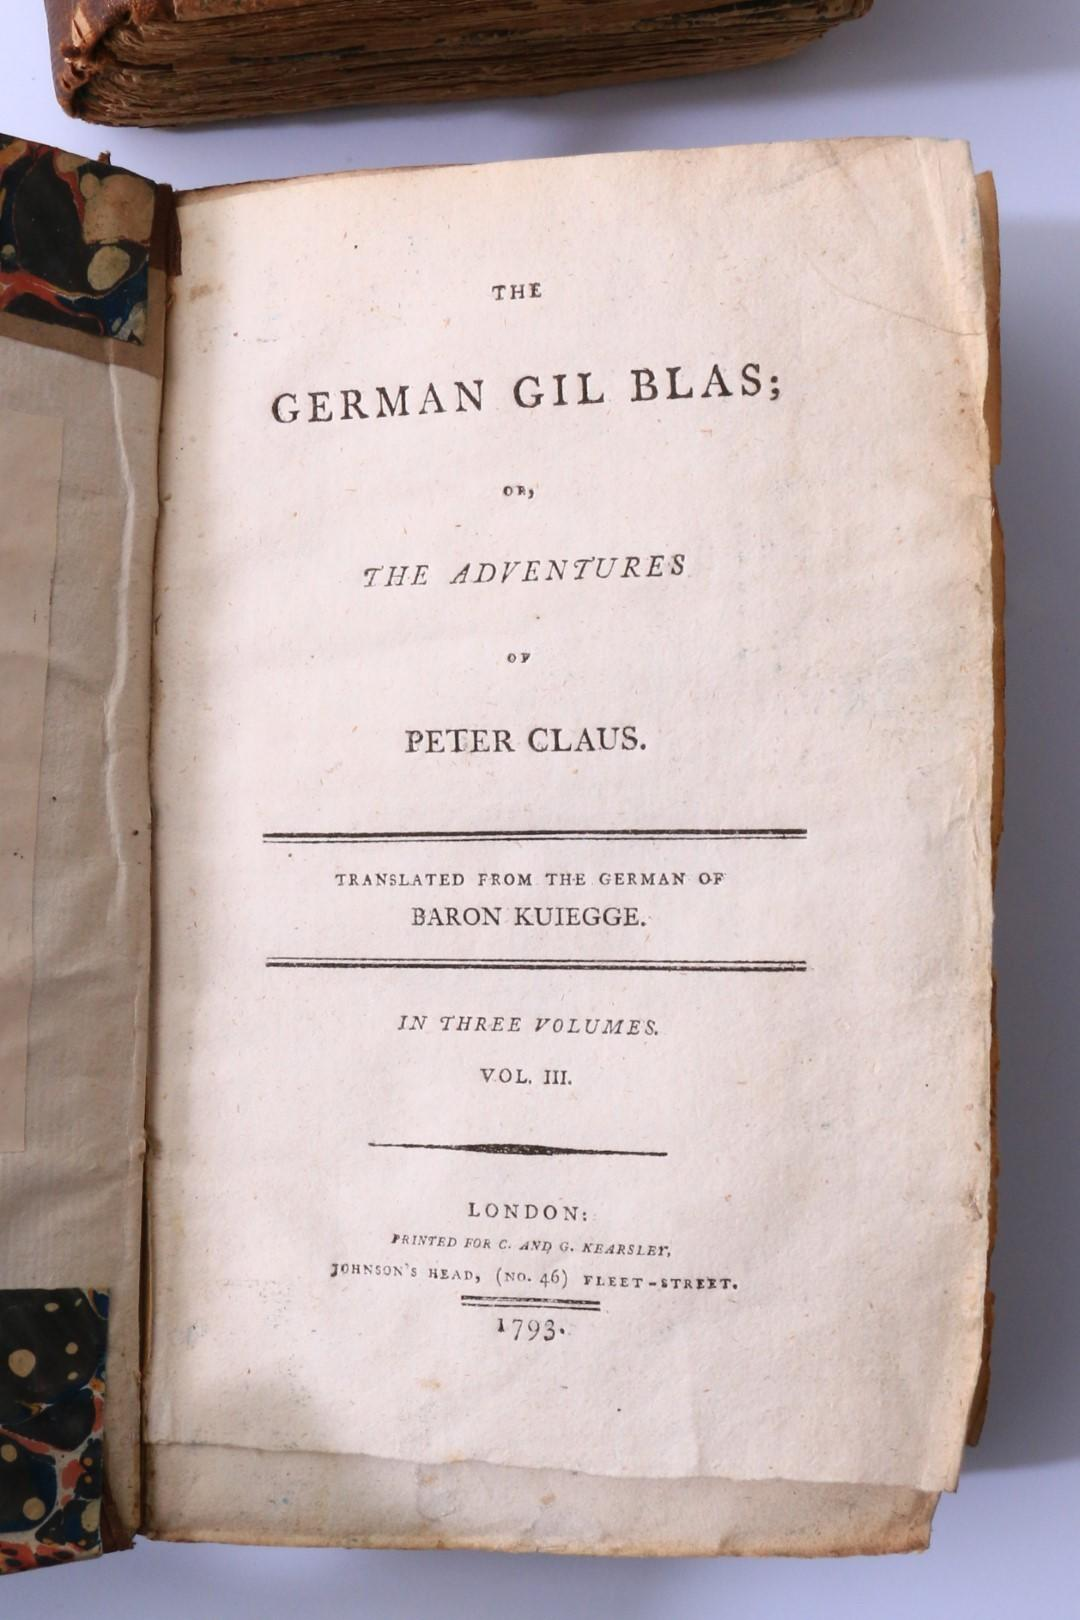 Baron Kuiegge - The German Gil Blas, or the Adventures of Peter Claus - C. and G. Kearsley, 1793, First Edition.